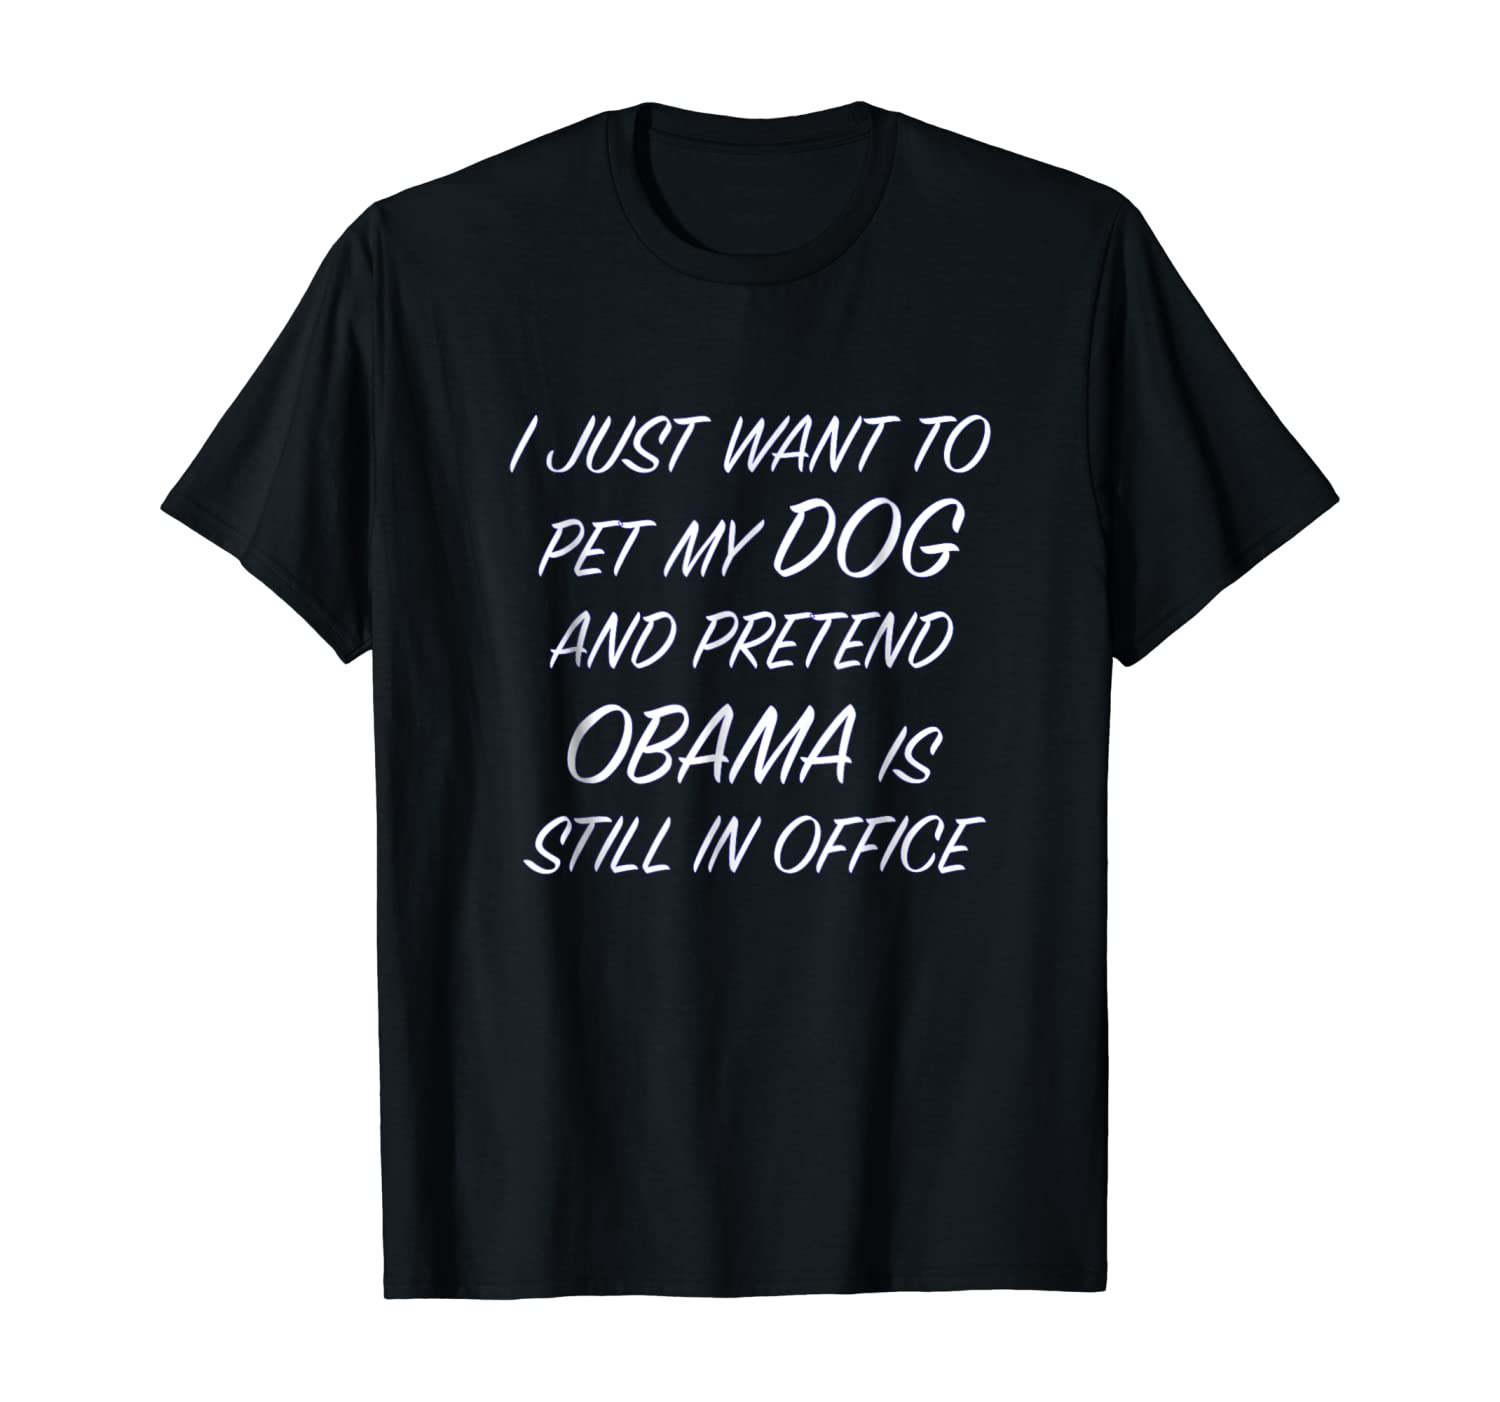 I Just Want to Pet My DOG and Pretend OBAMA - Funny T-Shirt